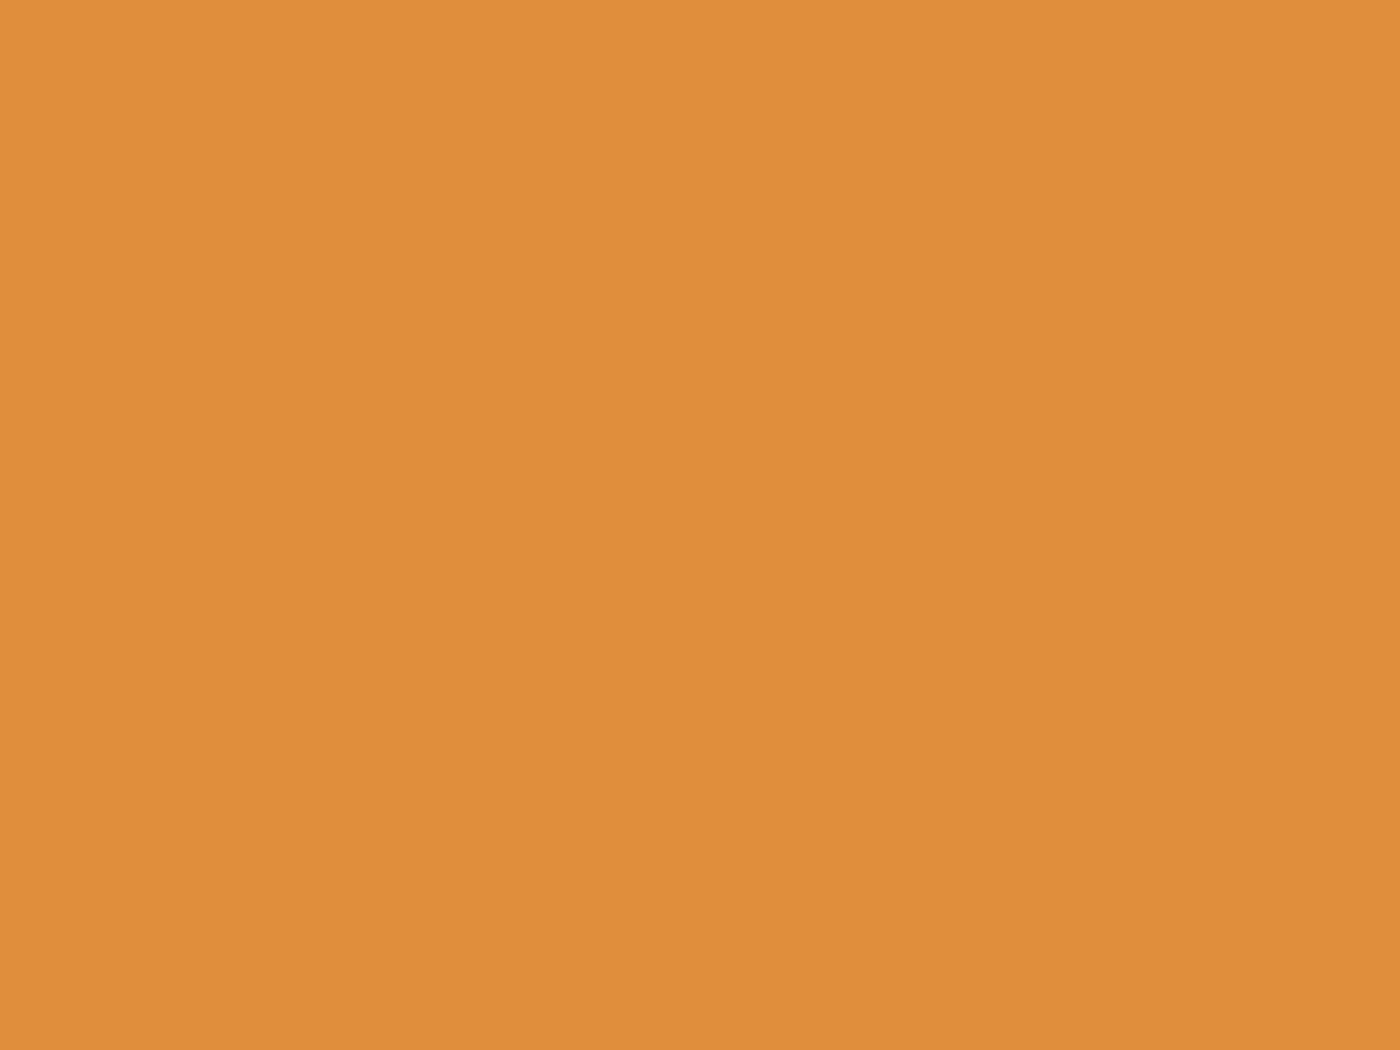 1400x1050 Tigers Eye Solid Color Background